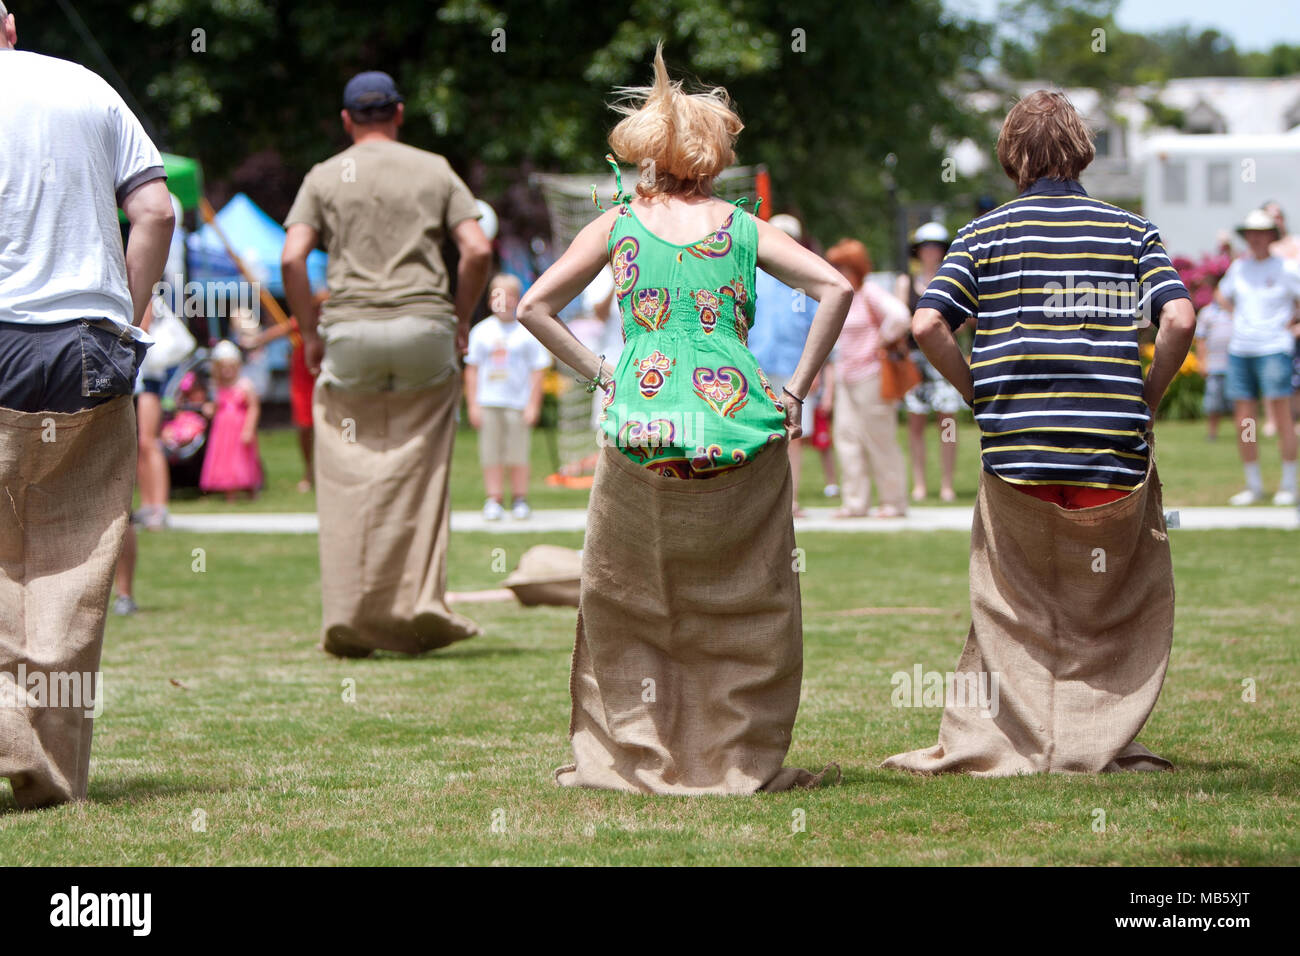 Several unidentified people compete in a sack race at the GREAT festival celebrating Great Britain and the UK, on May 25, 2013 in Atlanta, GA. - Stock Image